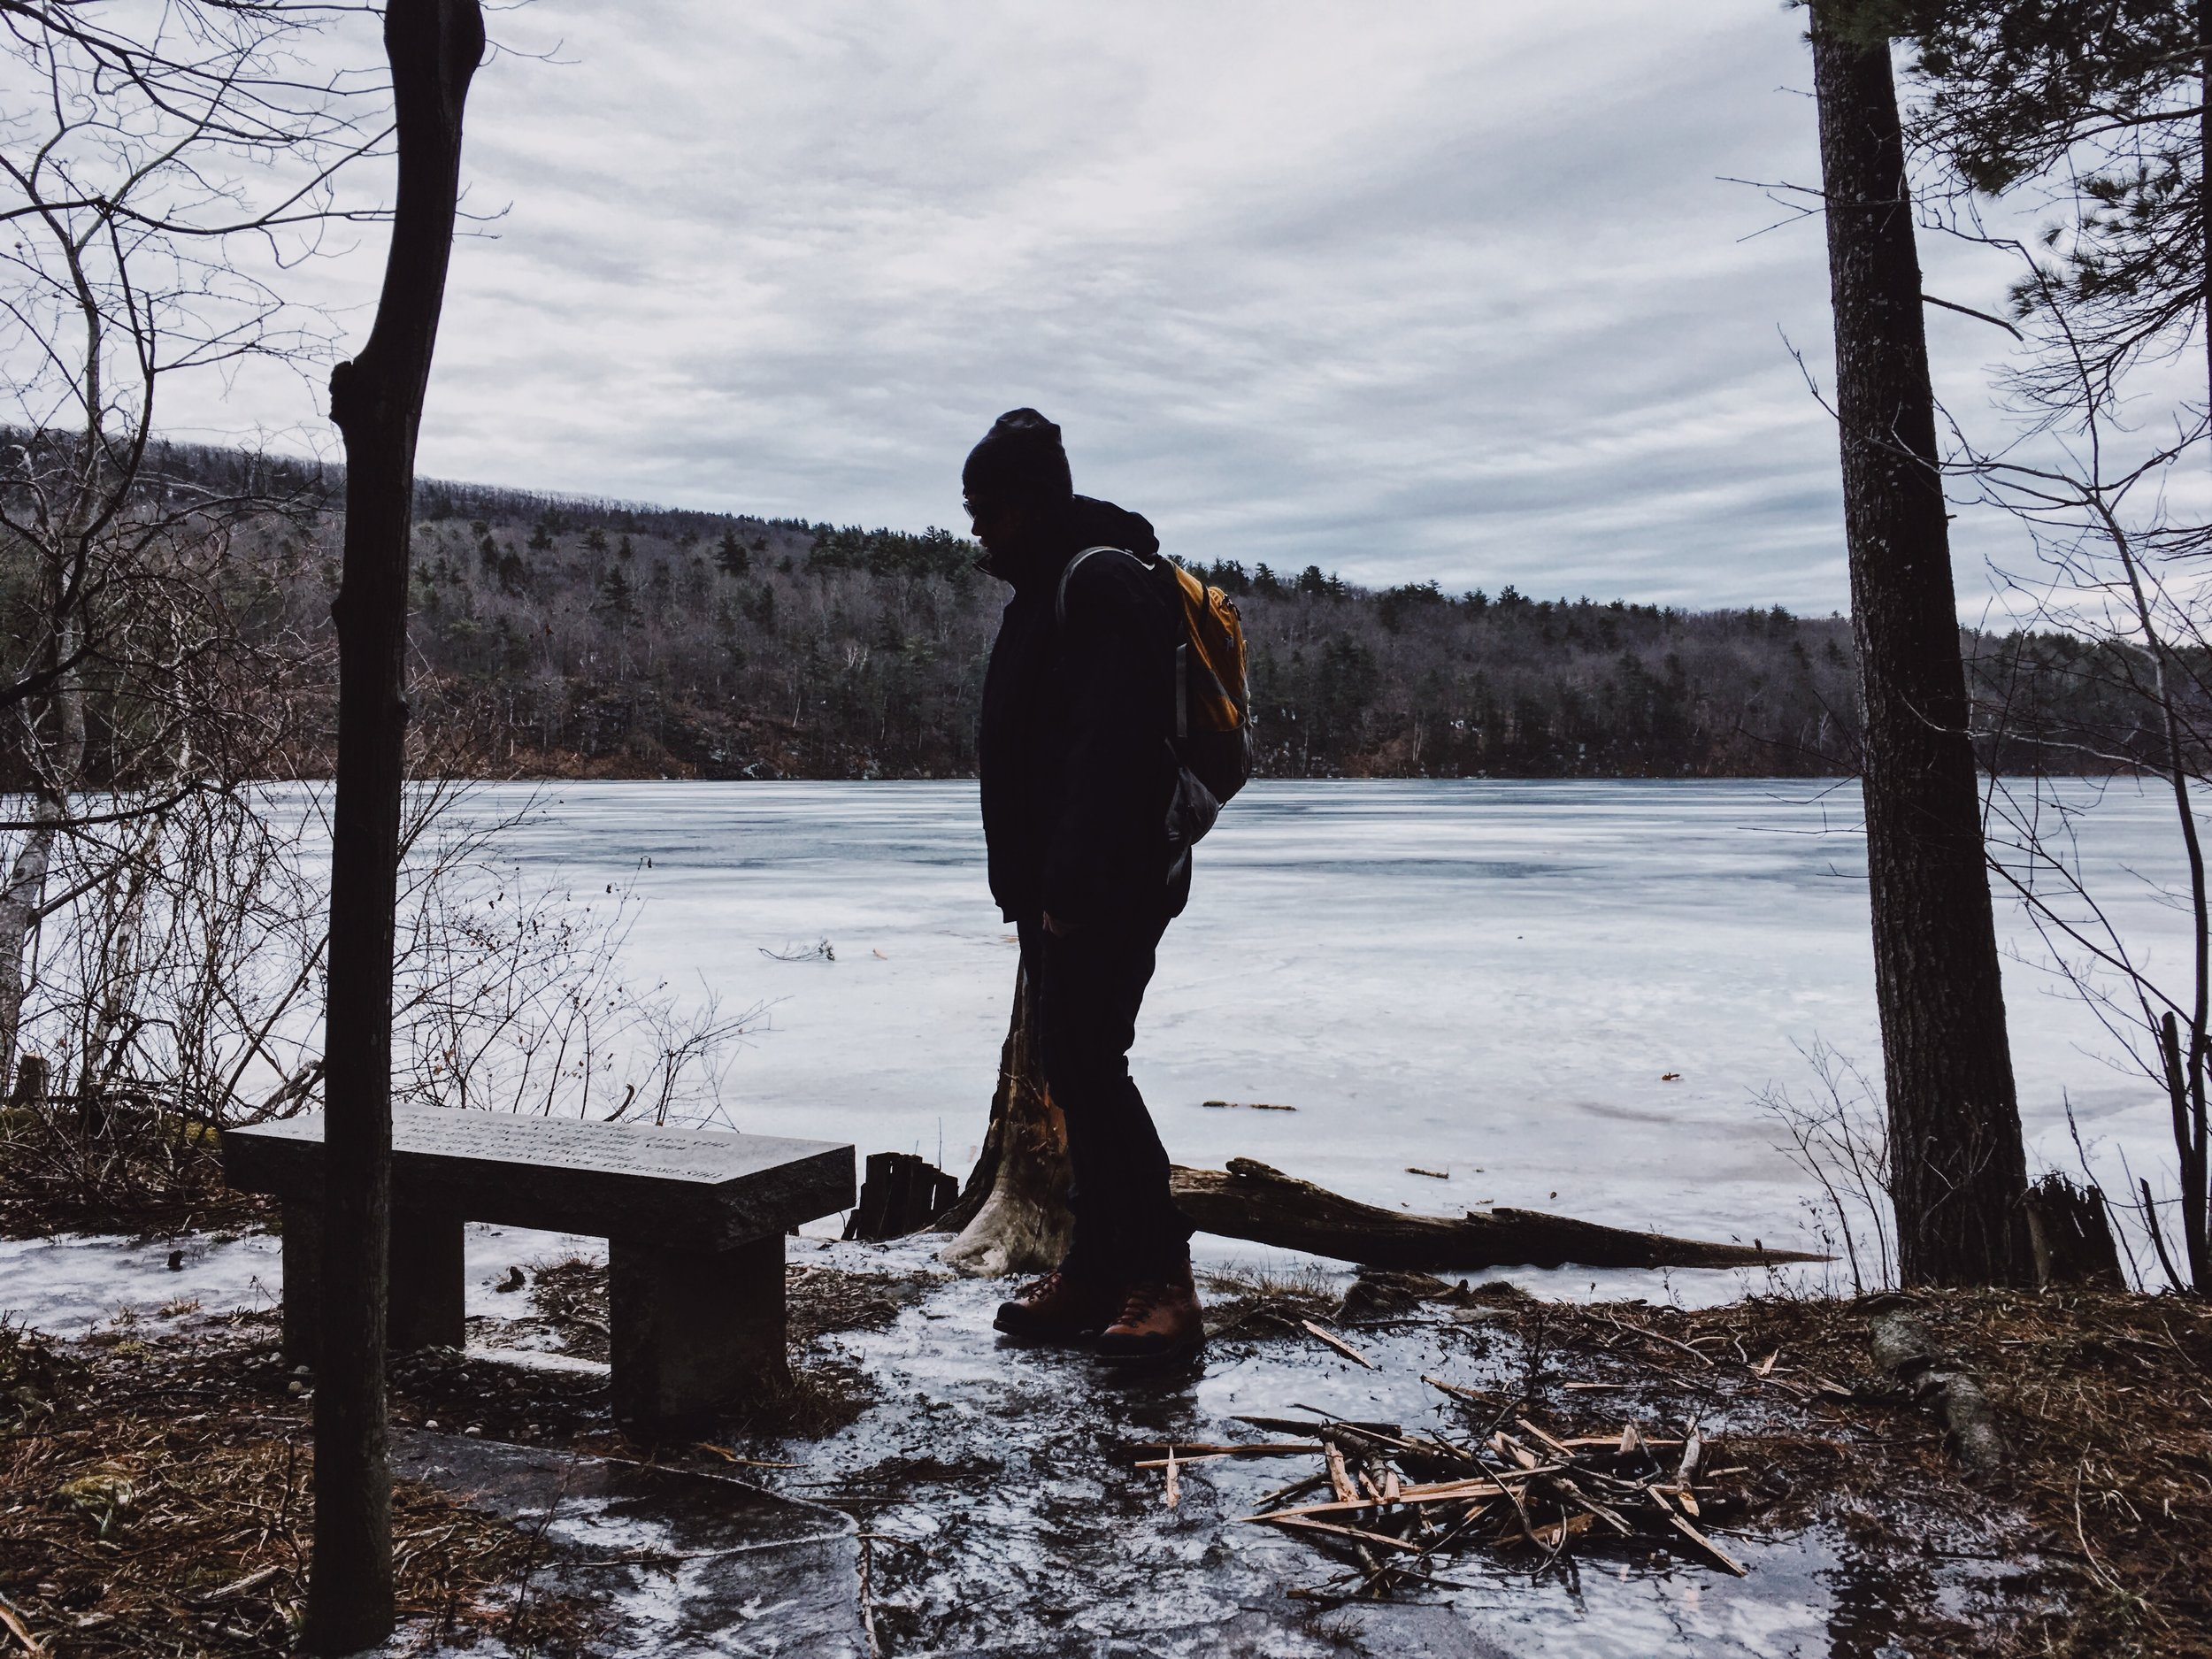 colchester-pond-vermont-randonnee-expedition-canine